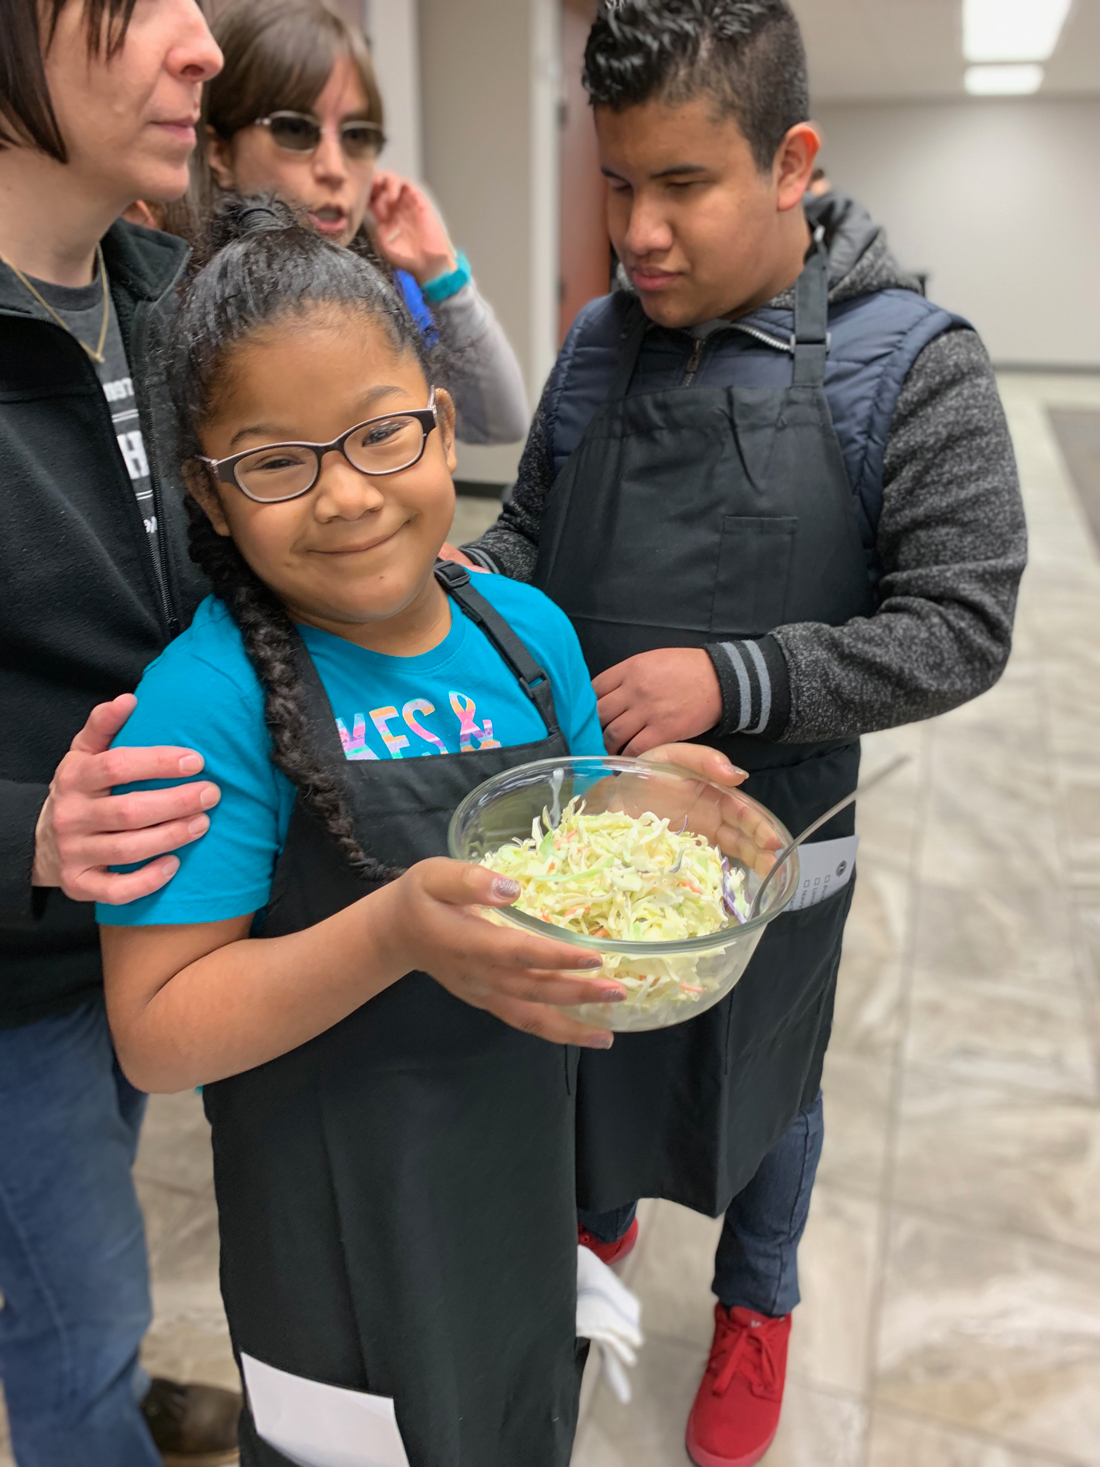 A young girl holds a bowl of spaghetti.